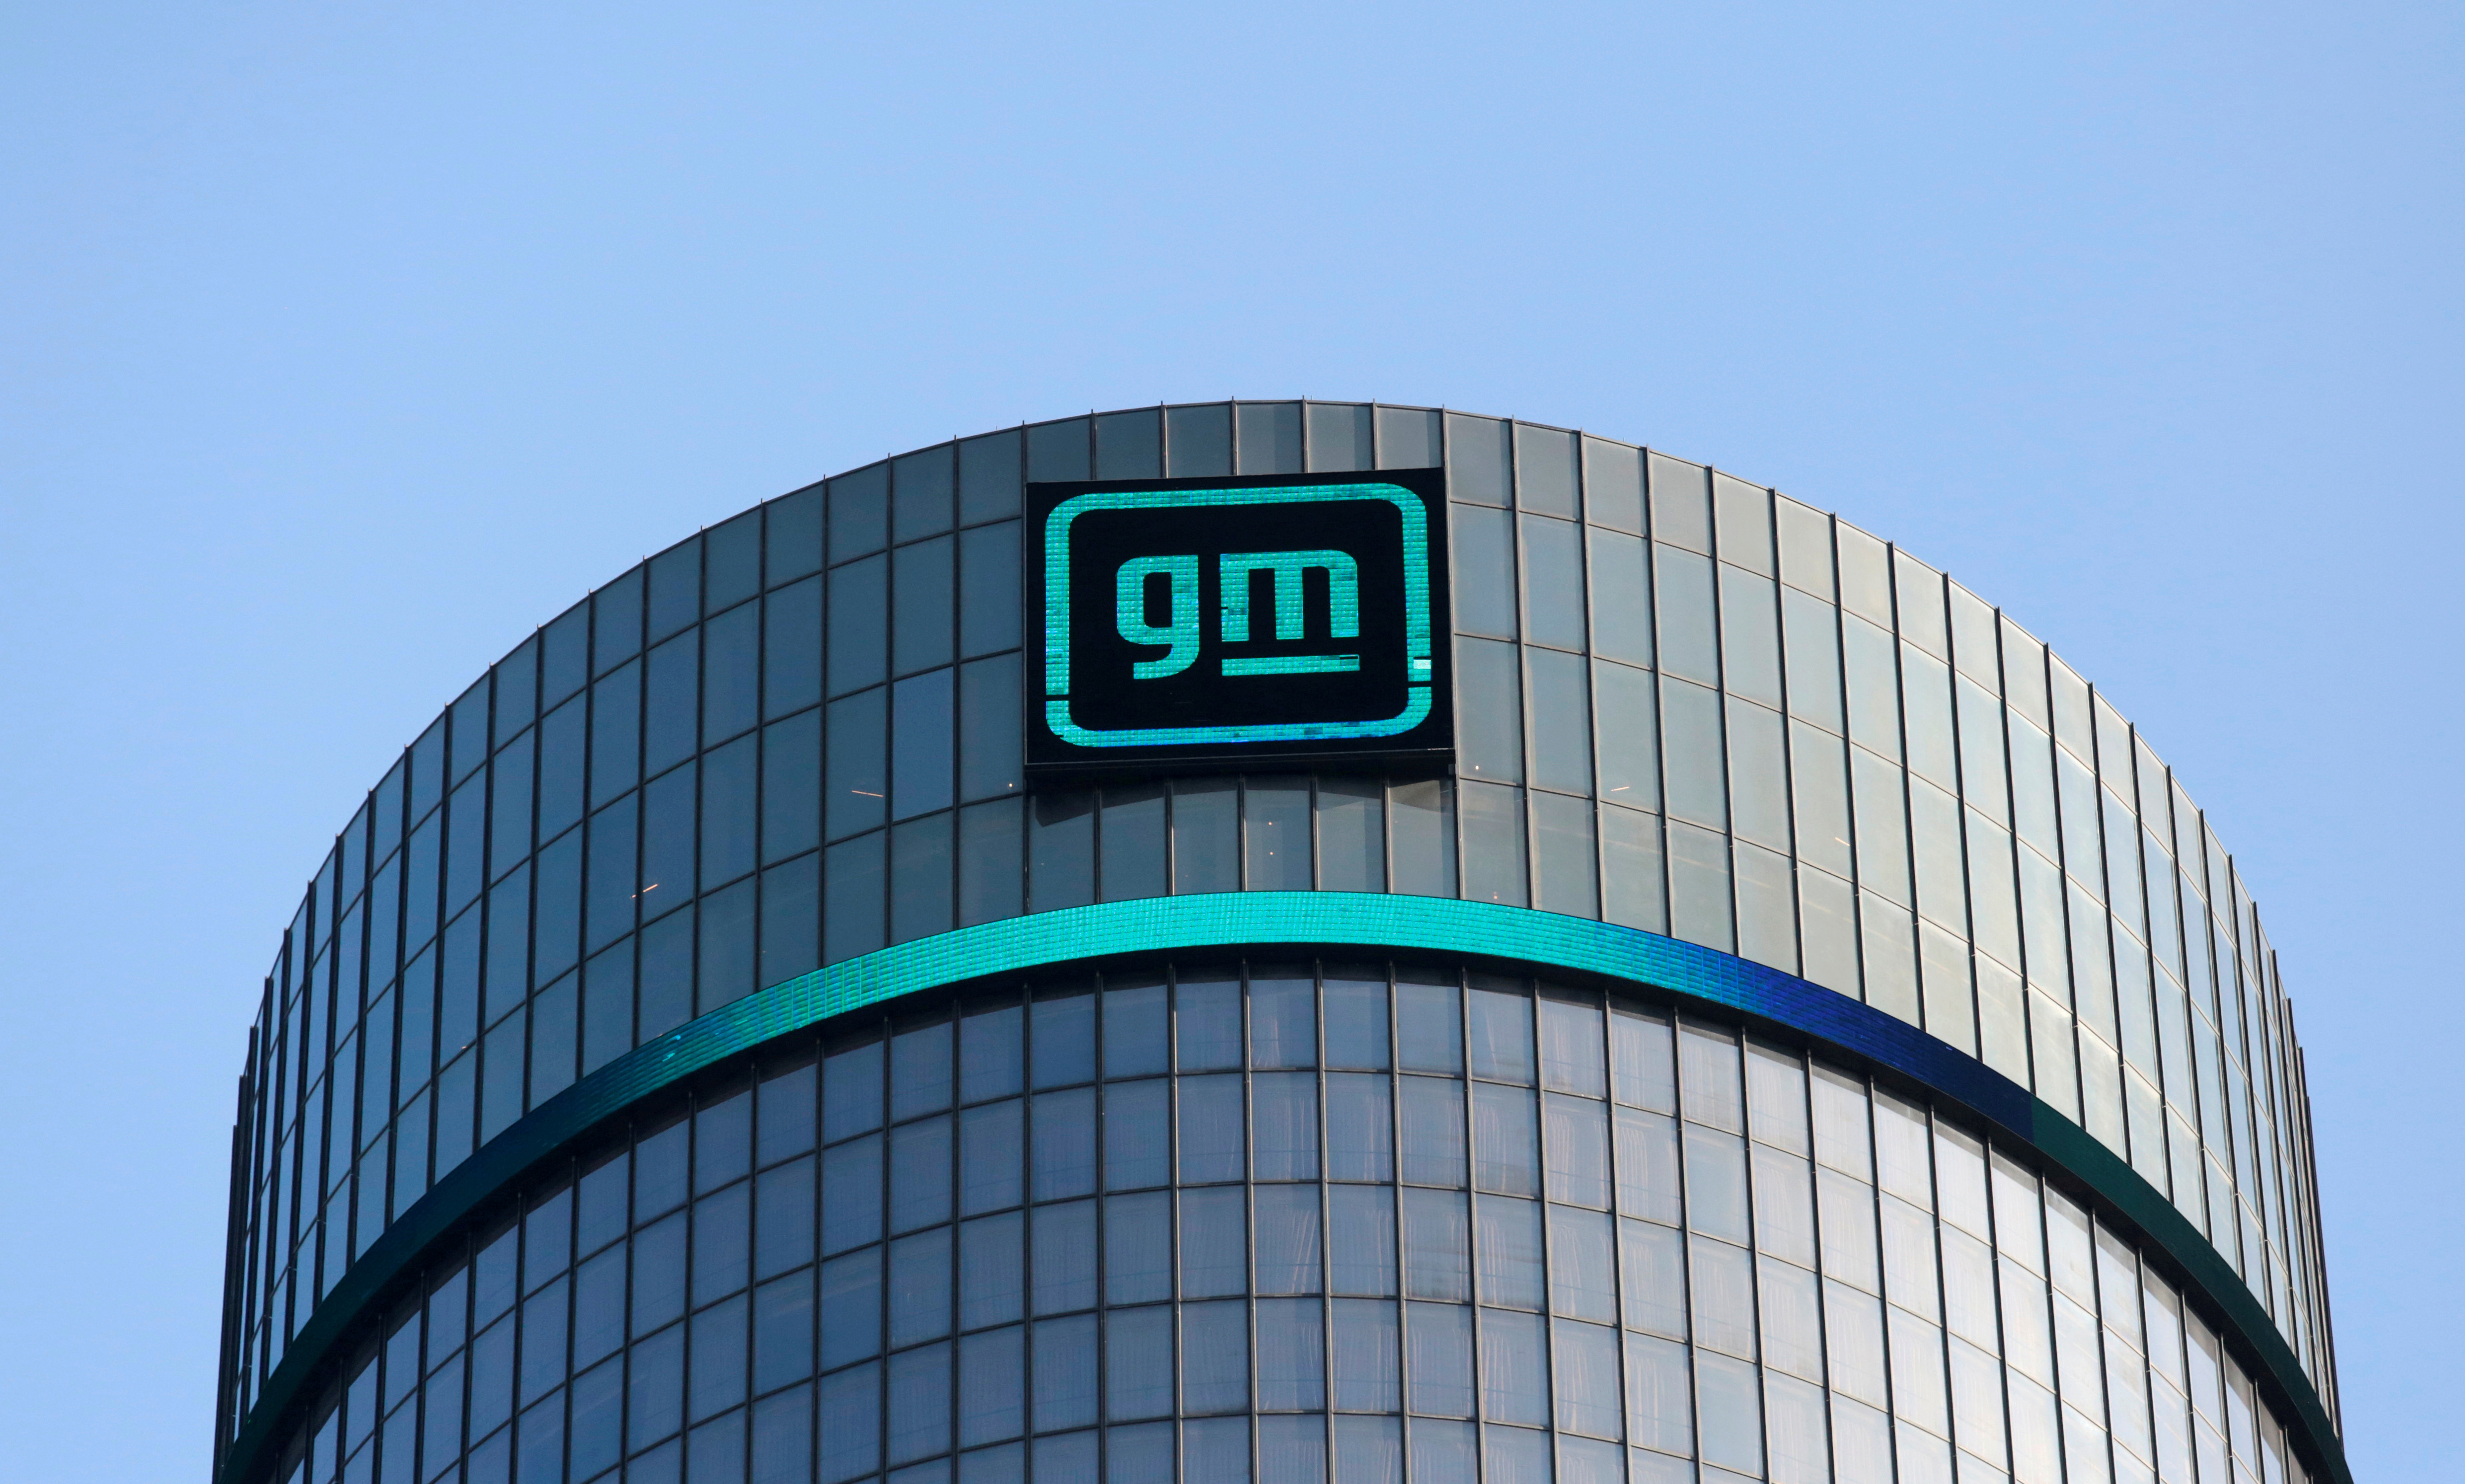 GM looking at longer-term supply contracts and partnerships for chips -CFO